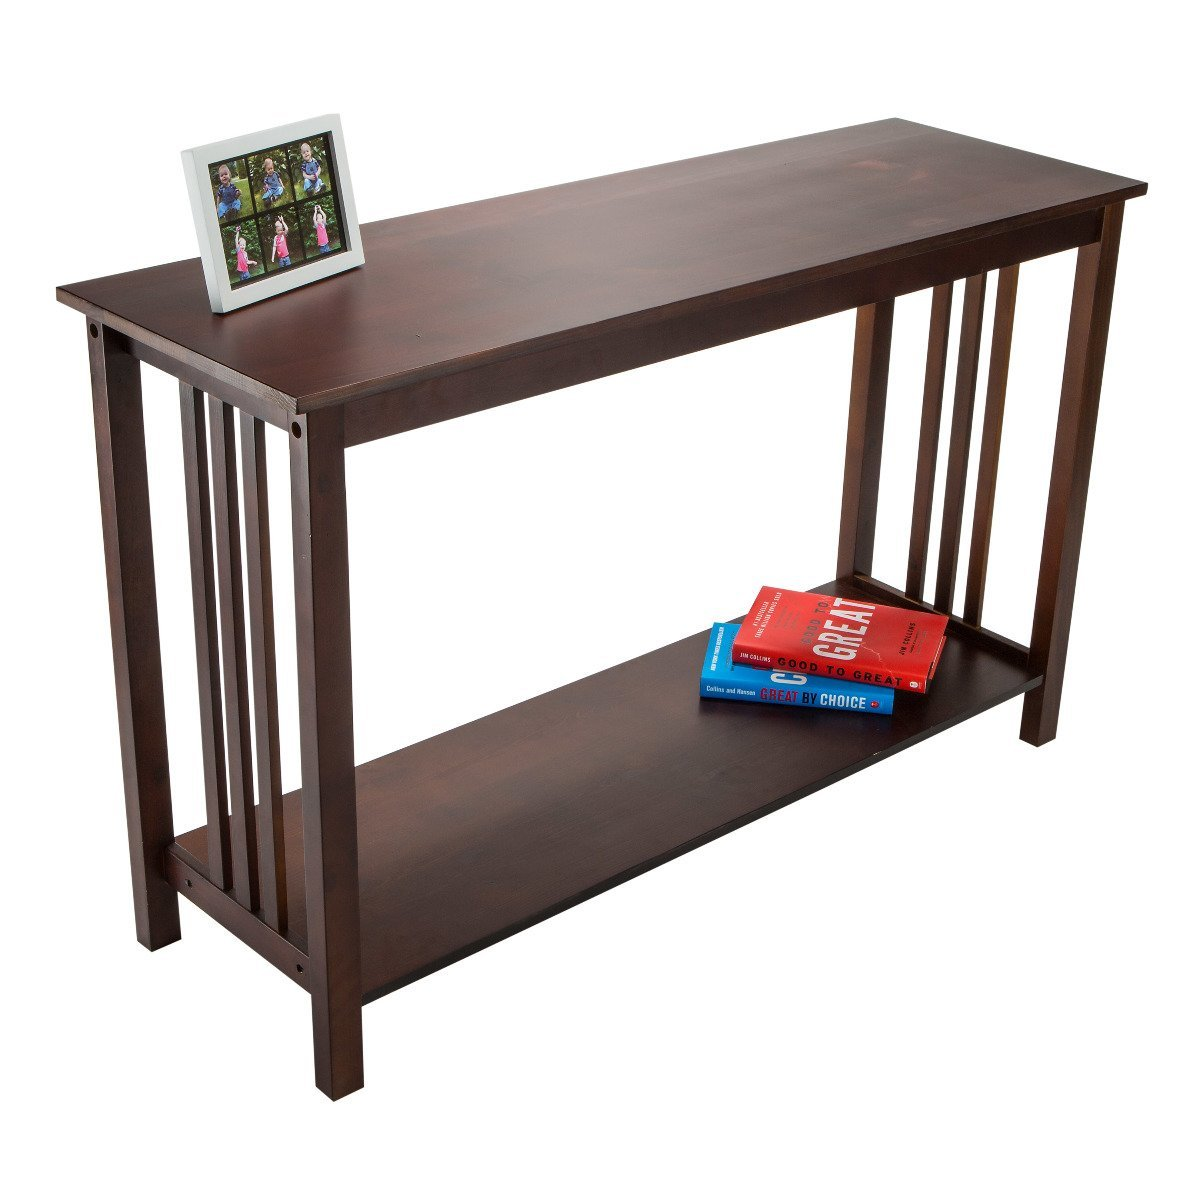 Buy Adeptus Mission Style Wood Sofa Console Table, Large In Cheap Price On  M.alibaba.com